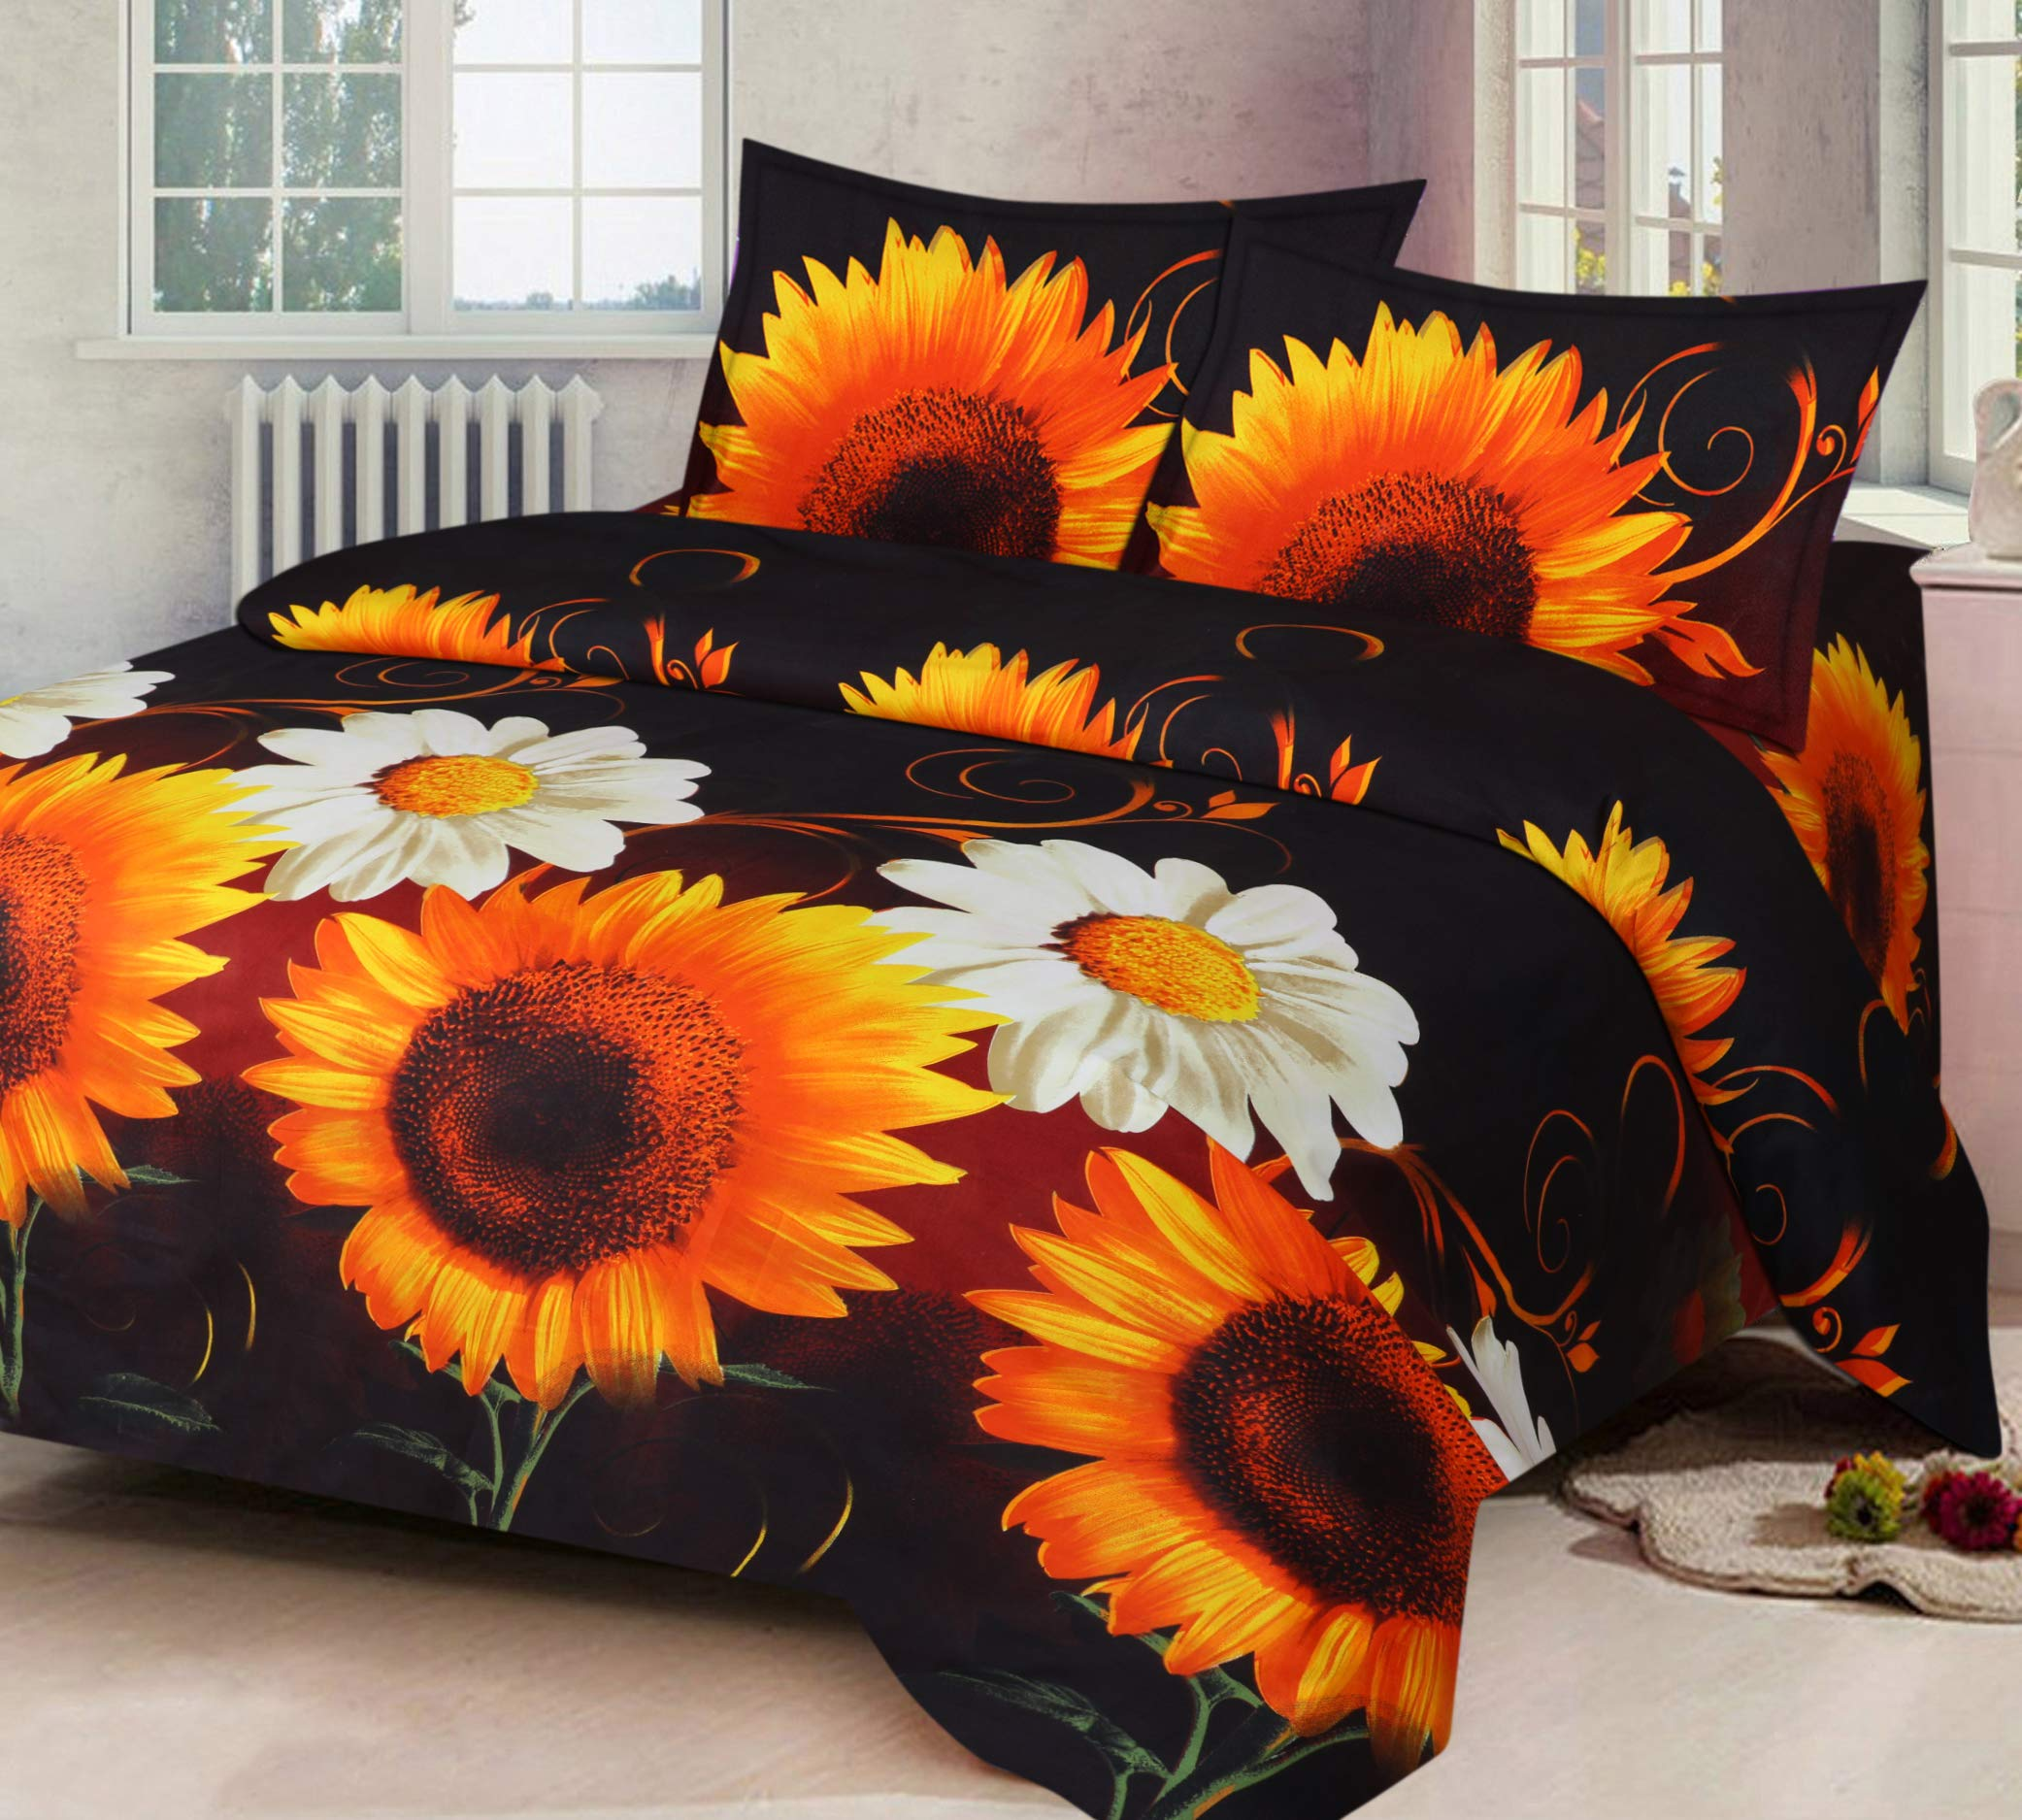 Home Candy Elegant 3-D Reactive Print Microfiber Double Bedsheet with 2 Pillow Covers - Floral, Multicolor (SRB-BST-324) product image